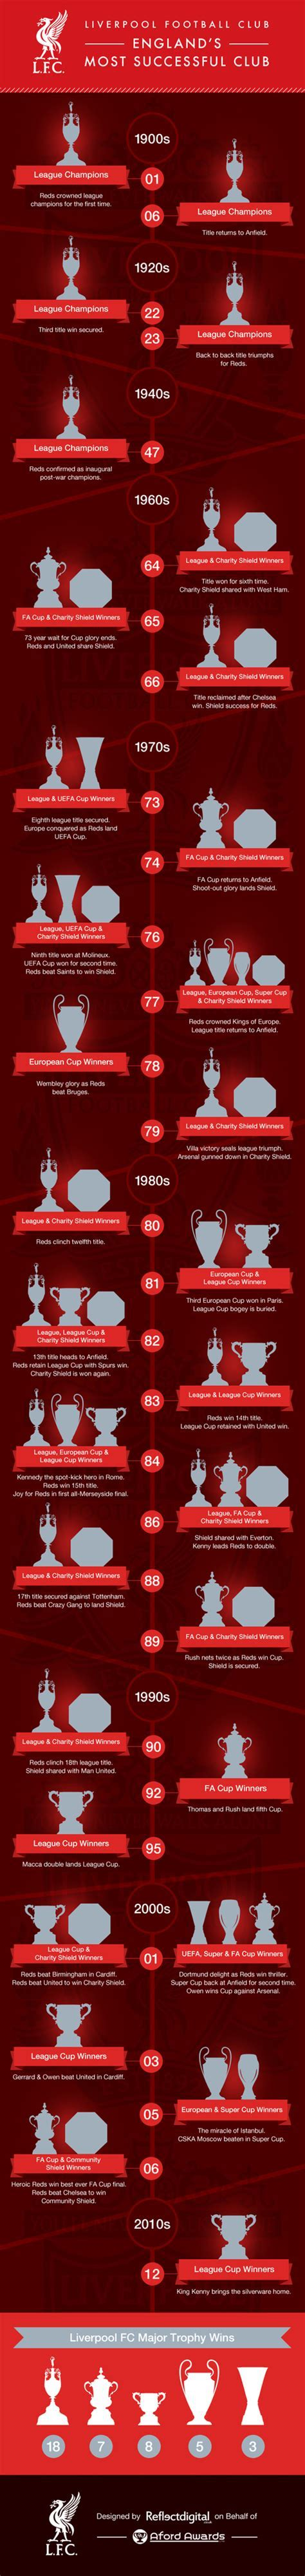 The History of Liverpool Football Trophies